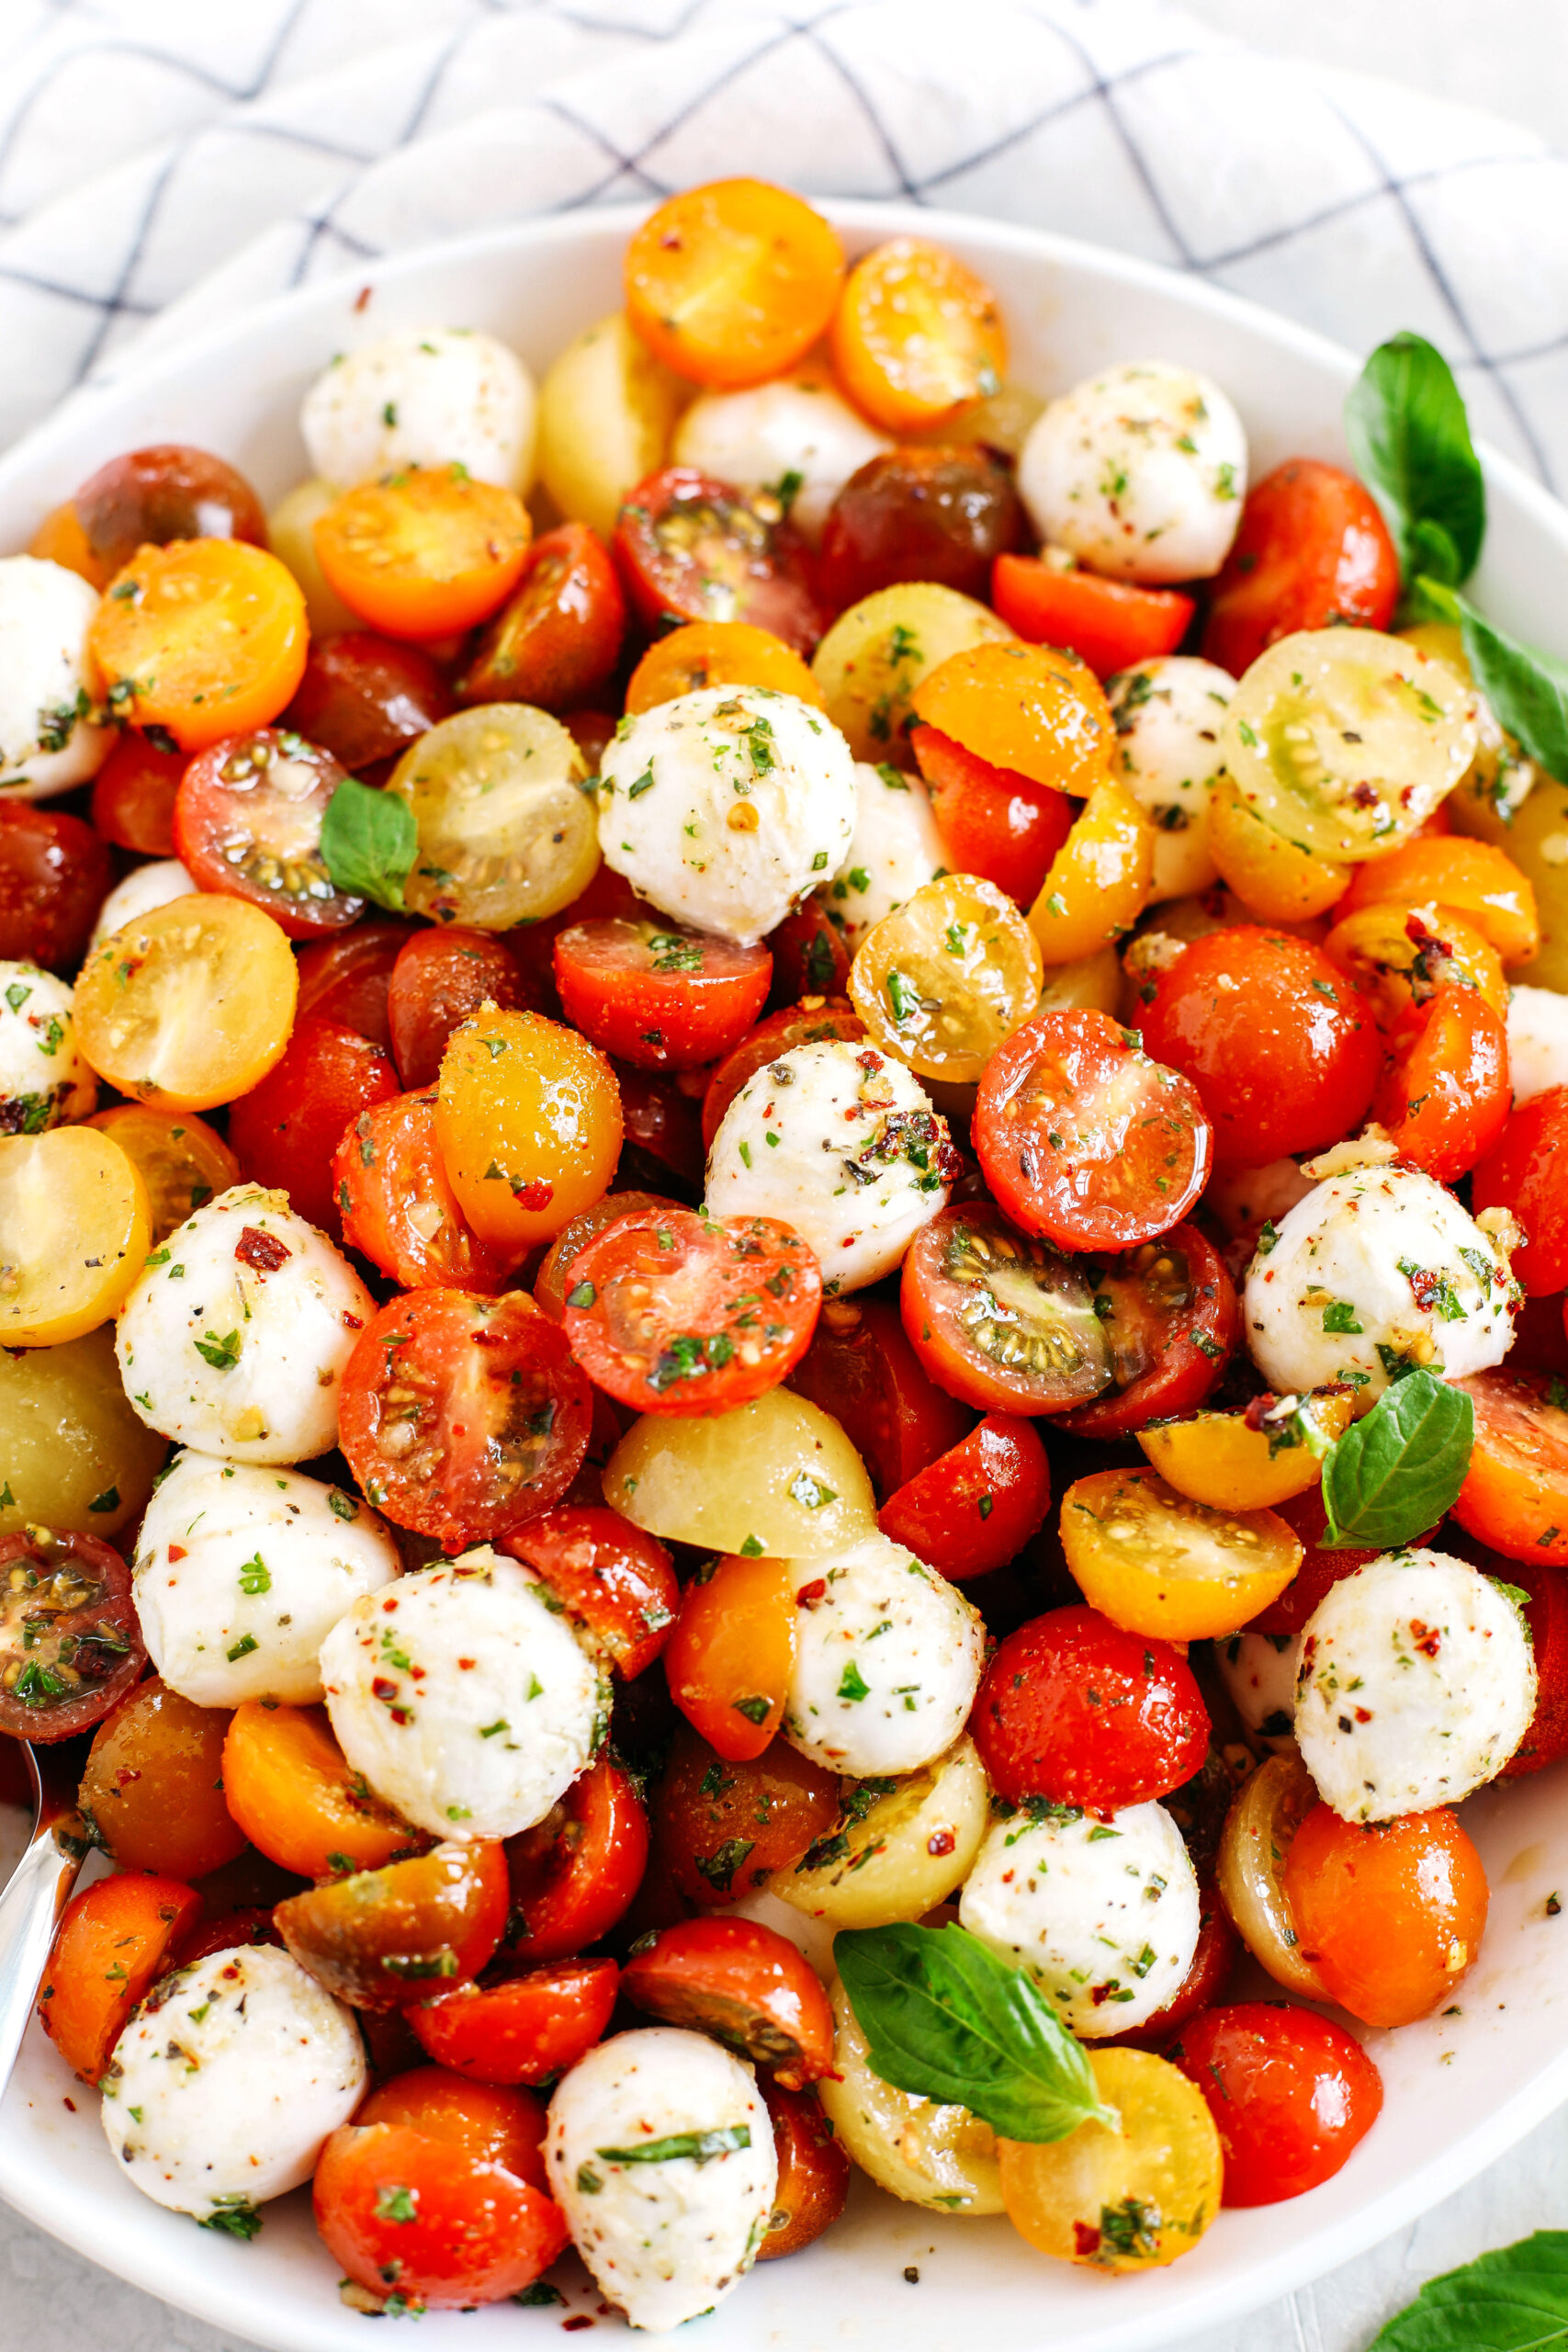 This Summer Caprese Salad is loaded with juicy tomatoes and creamy balls of mozzarella cheese all marinated in a delicious combination of olive oil, balsamic vinegar, garlic and fresh herbs!